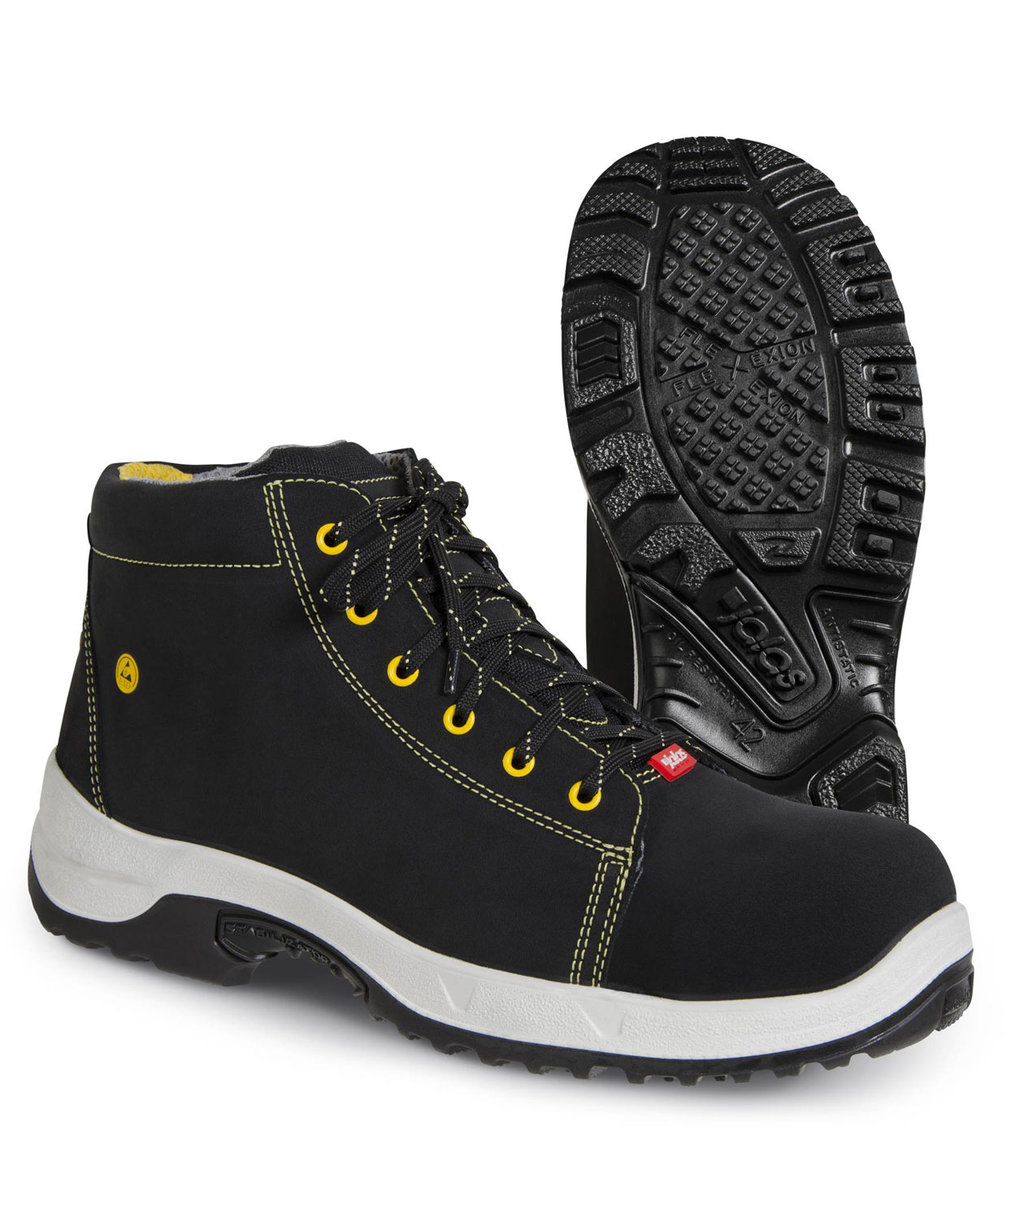 Jalas 3055 Fiftyfive safety boots S3, Black